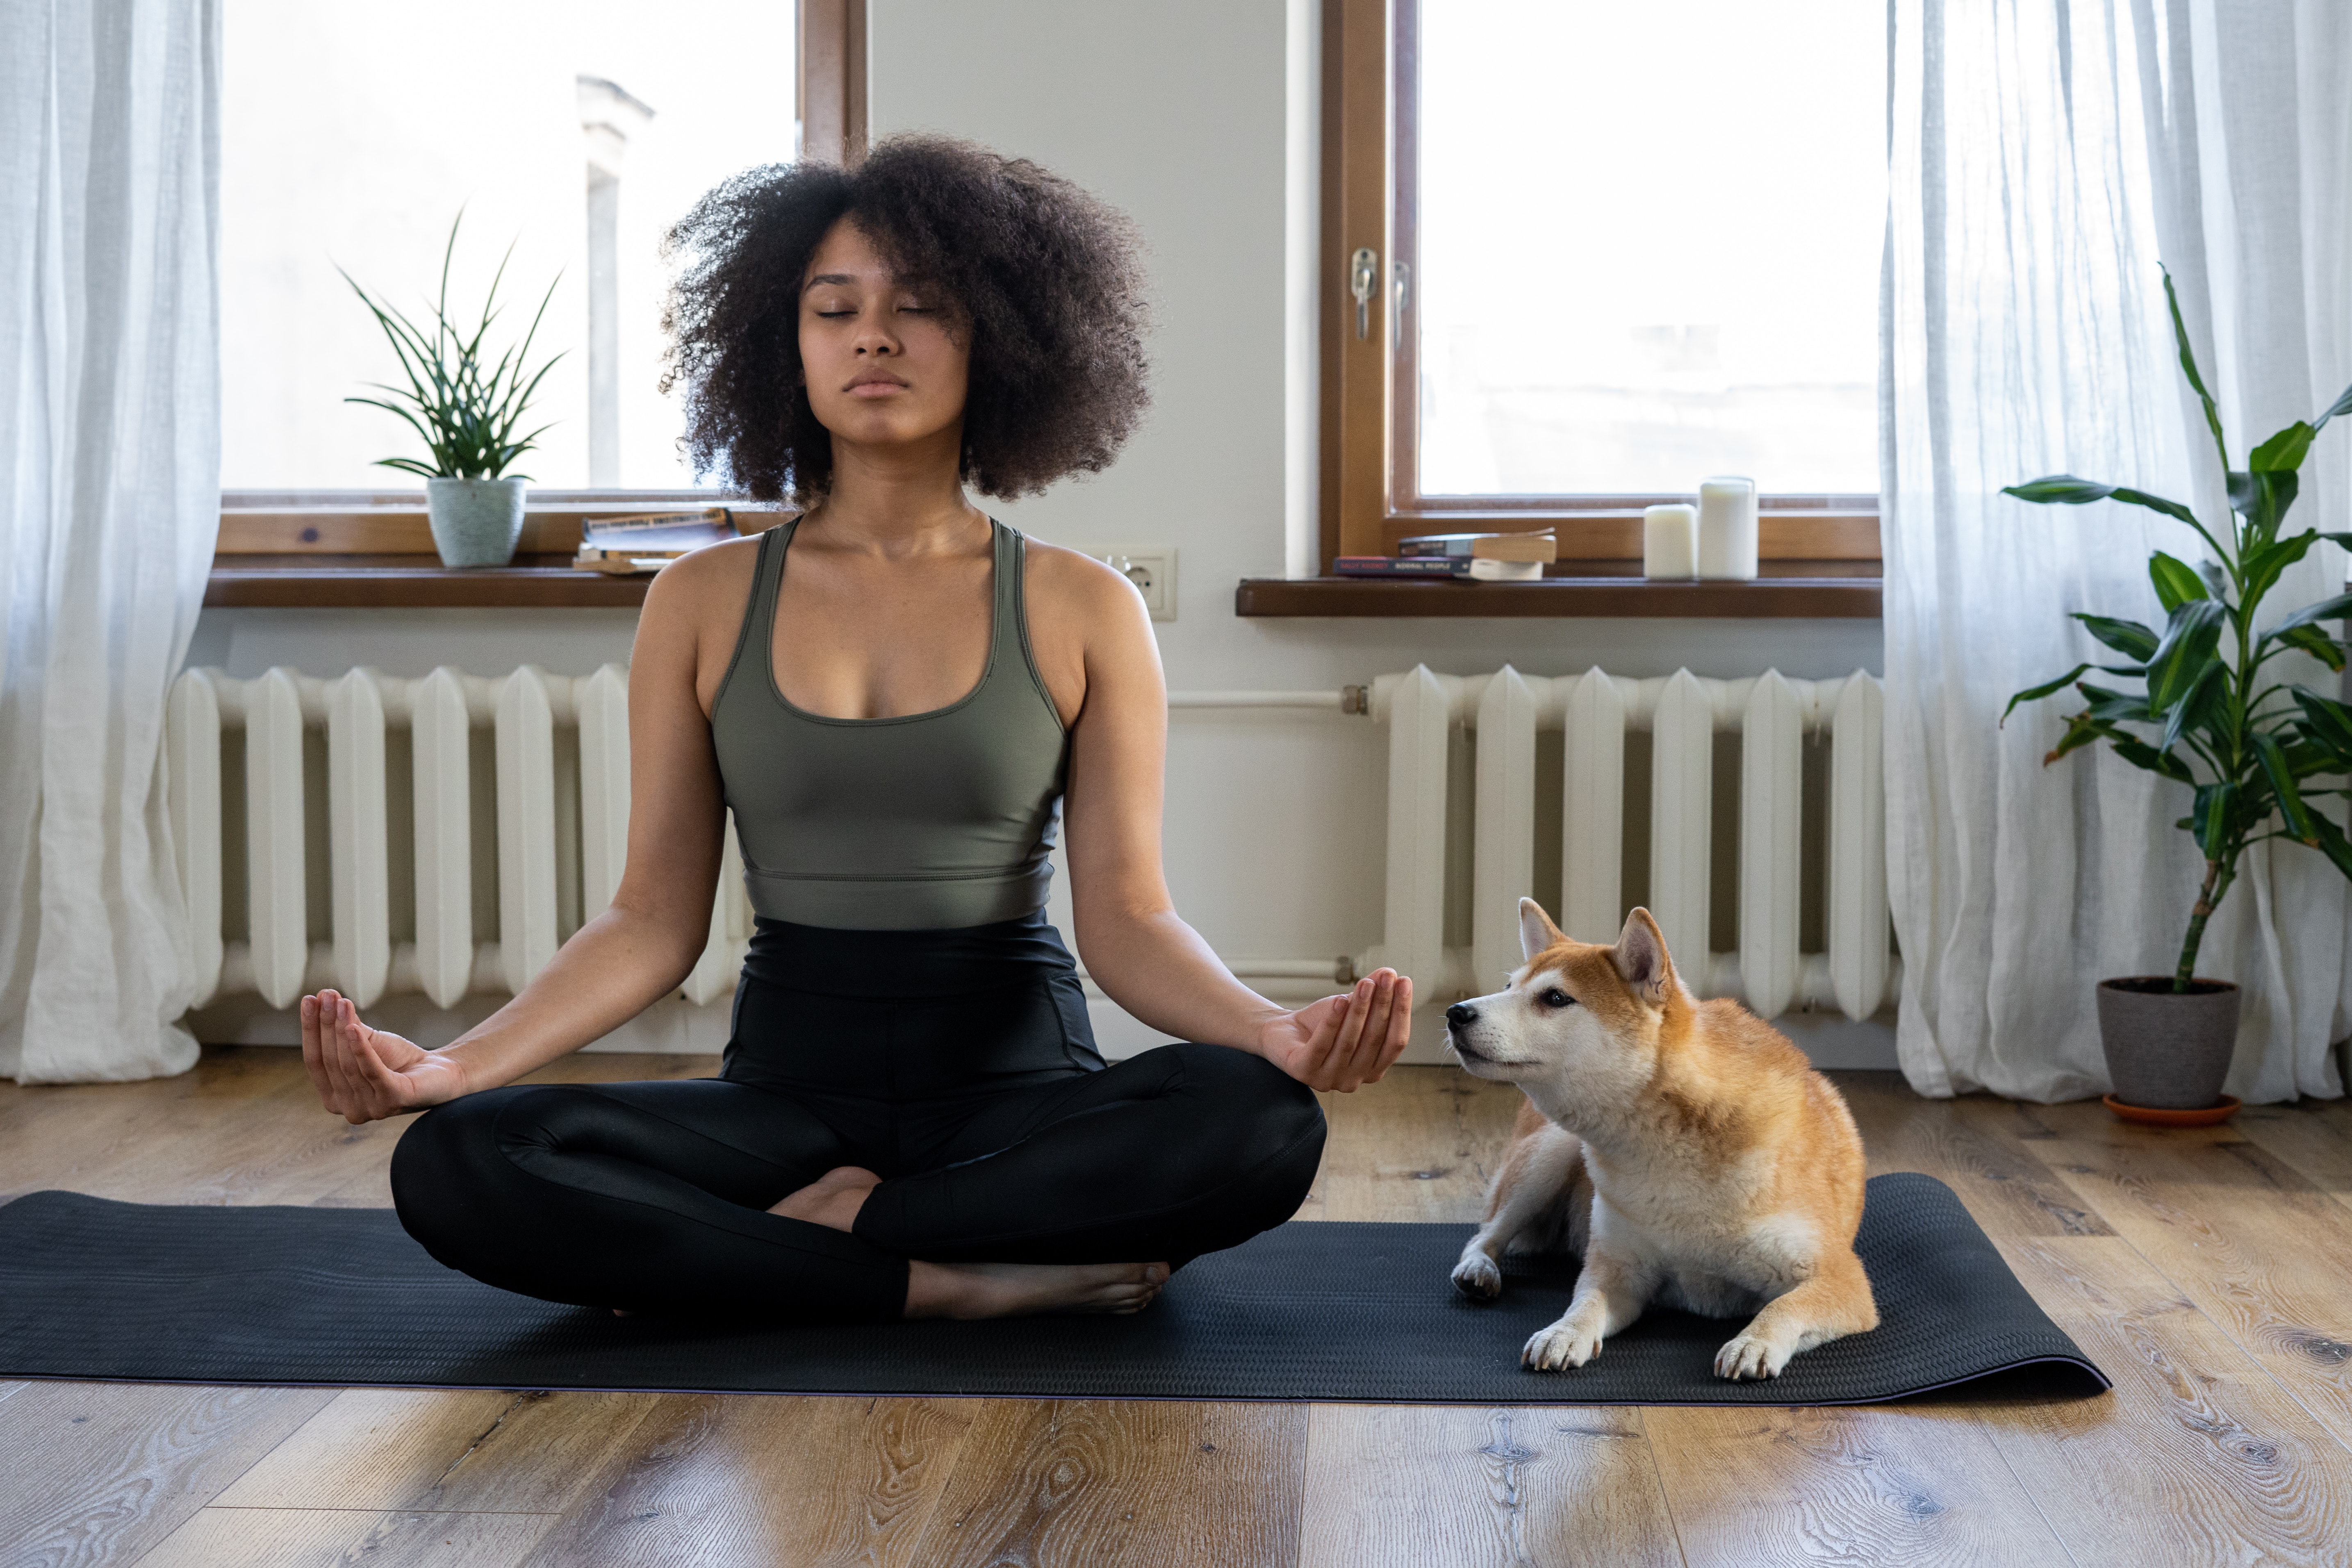 woman practicing meditation at home on her yoga mat with her dog